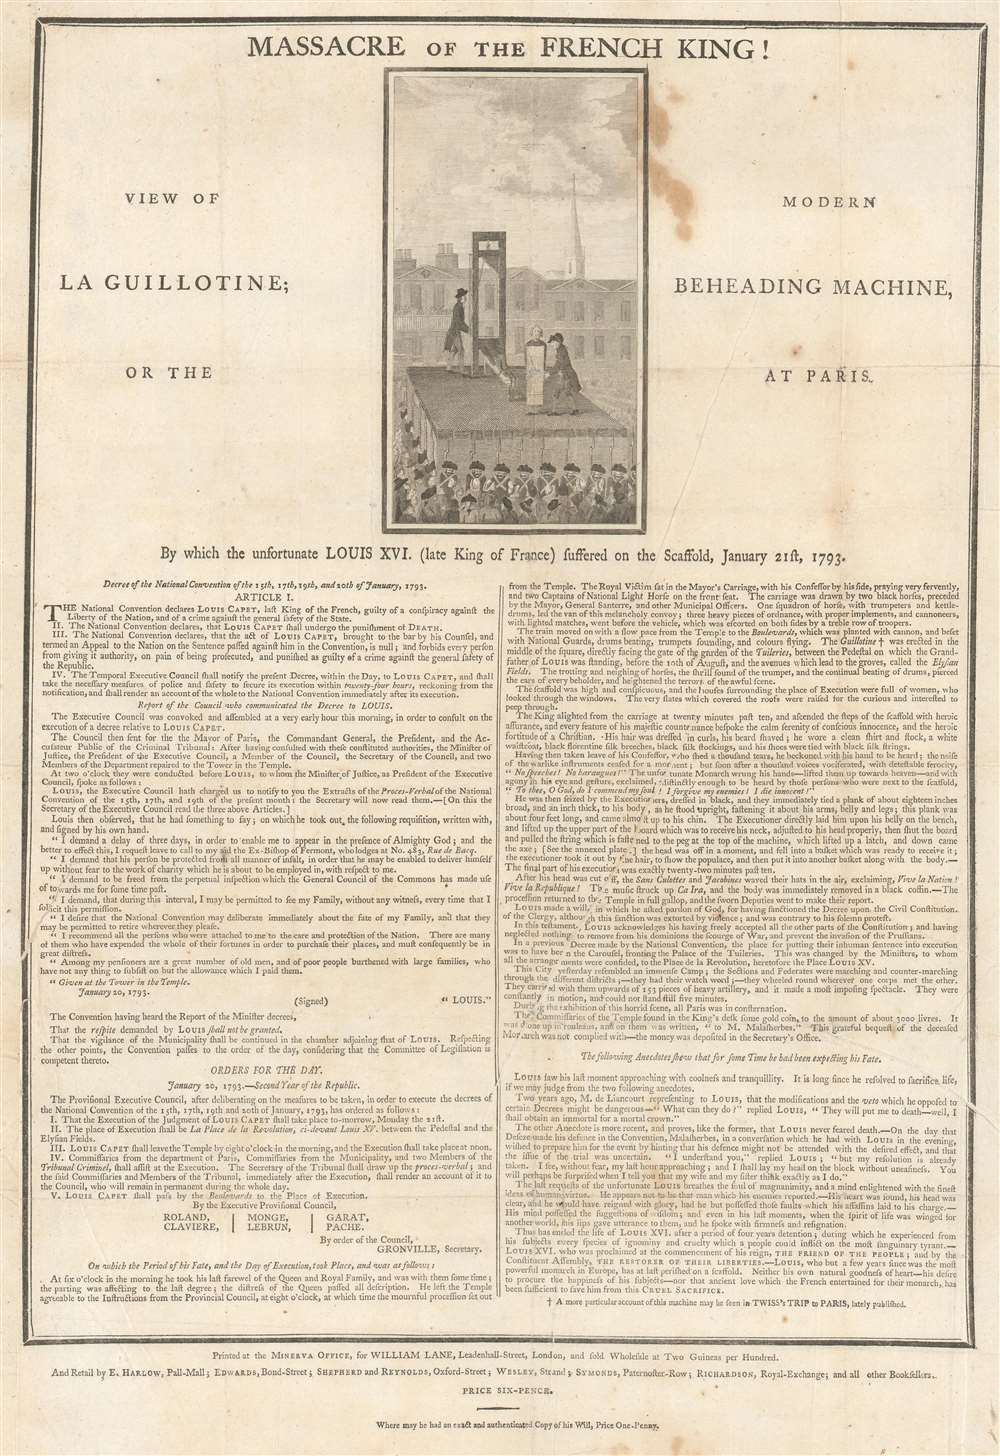 1793 British Broadside Decrying the Execution of French King Louis XVI